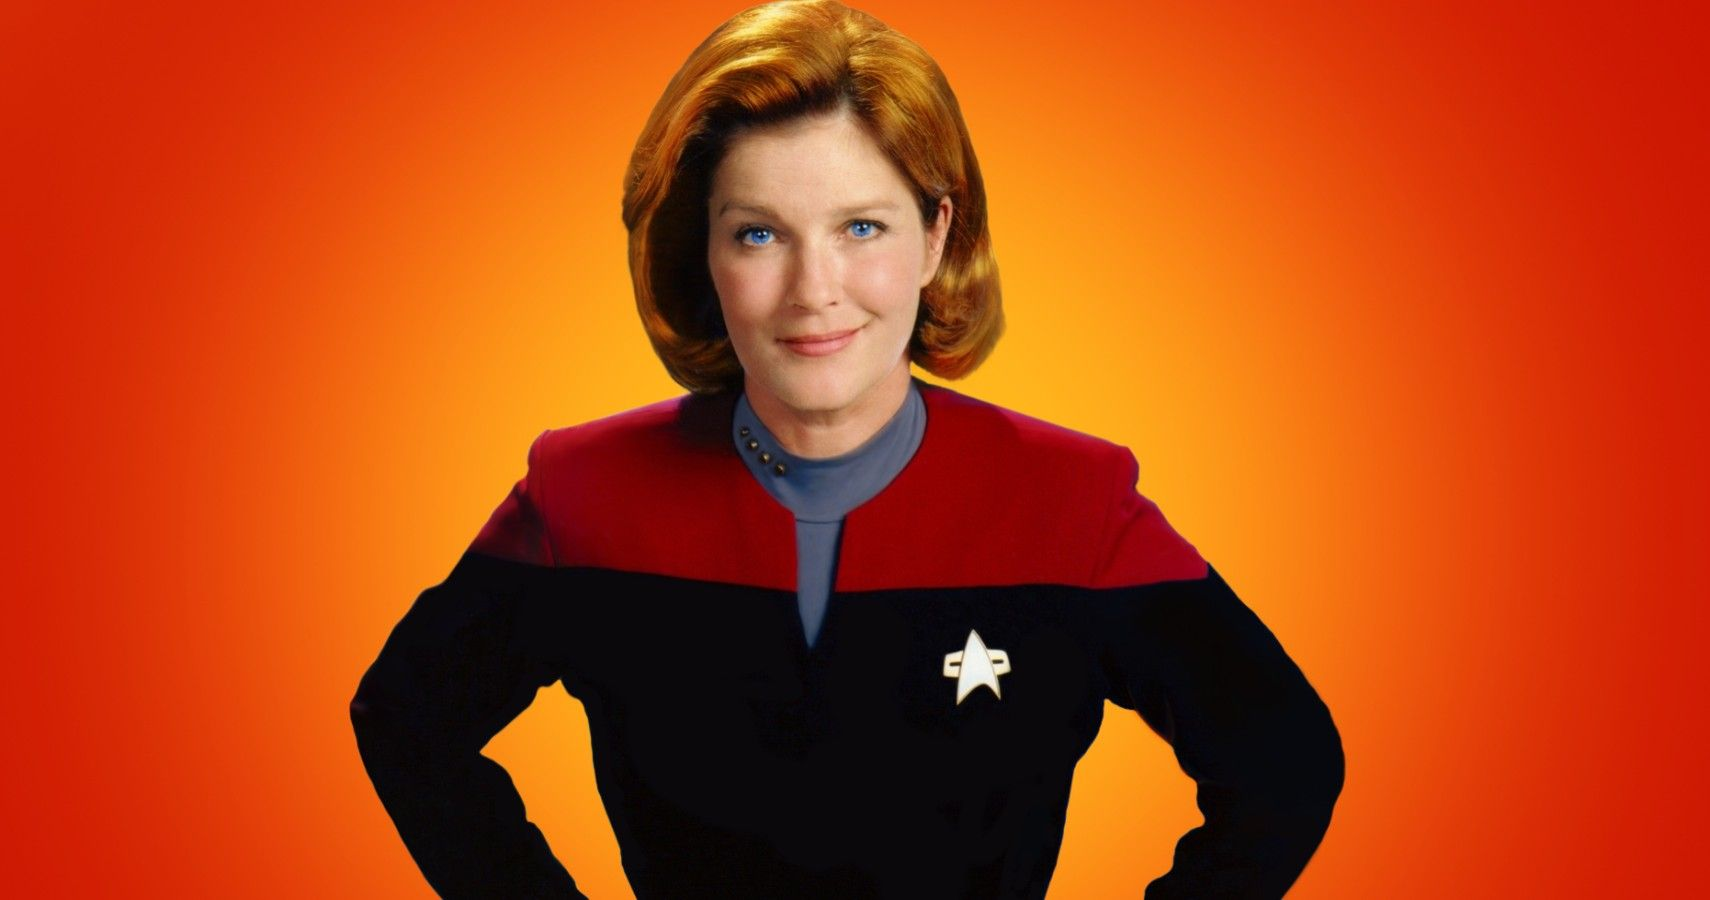 Star Trek: 10 Things You Didn't Know About Female Captain Kathryn Janeway